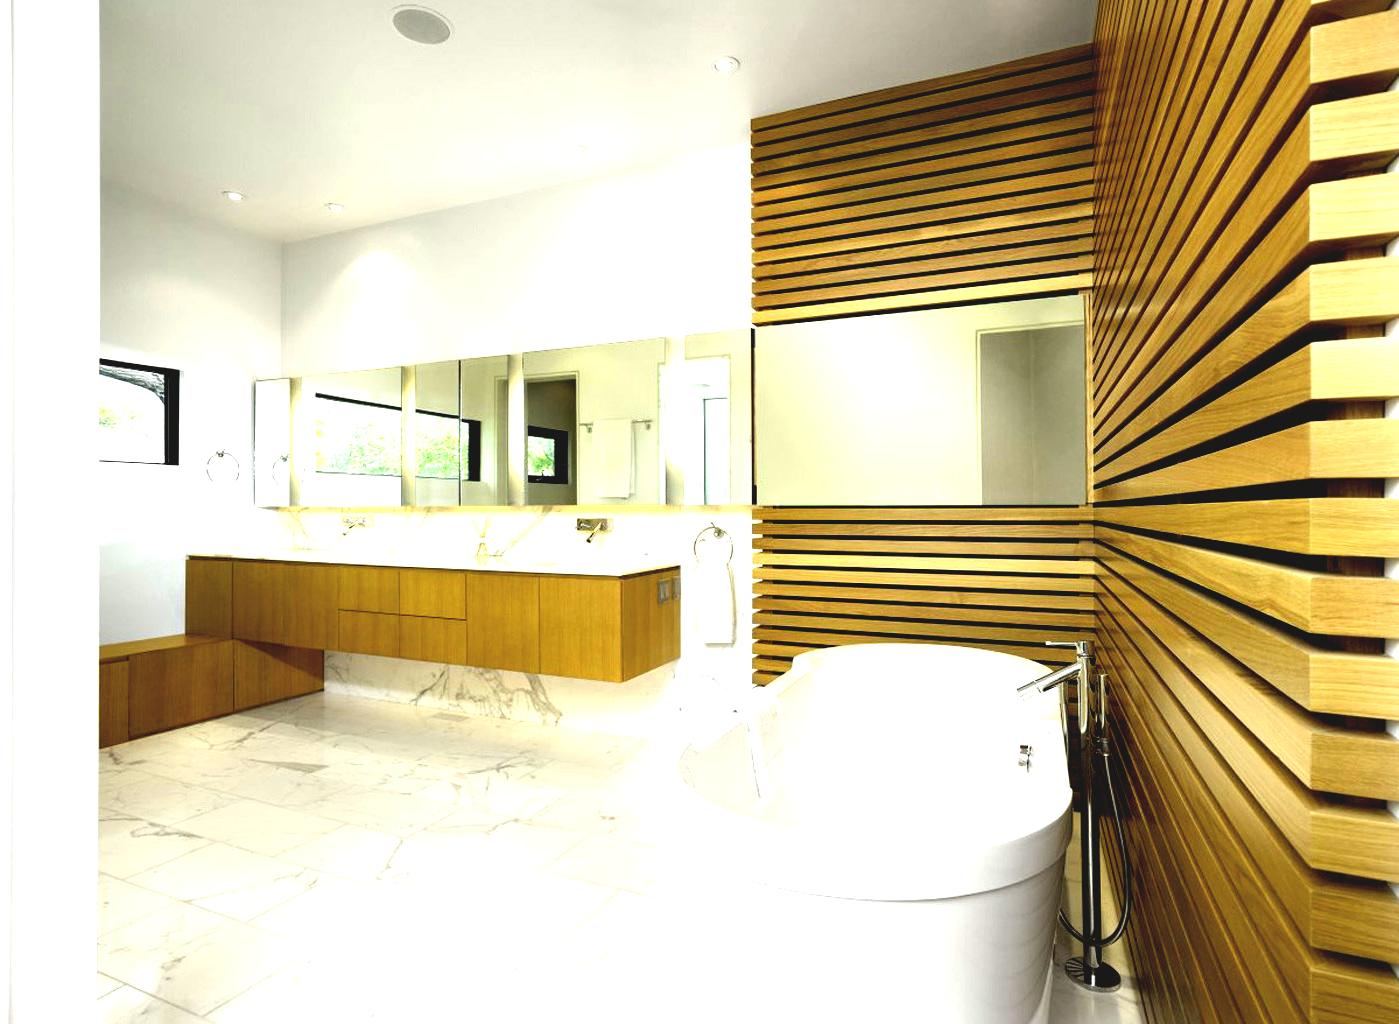 wood-decorative-wall-design-white-ceramic-flooring-tile-stand-alone-bathtub-luxury-bathroom-designs-more-ideas-for-your-home-decoration